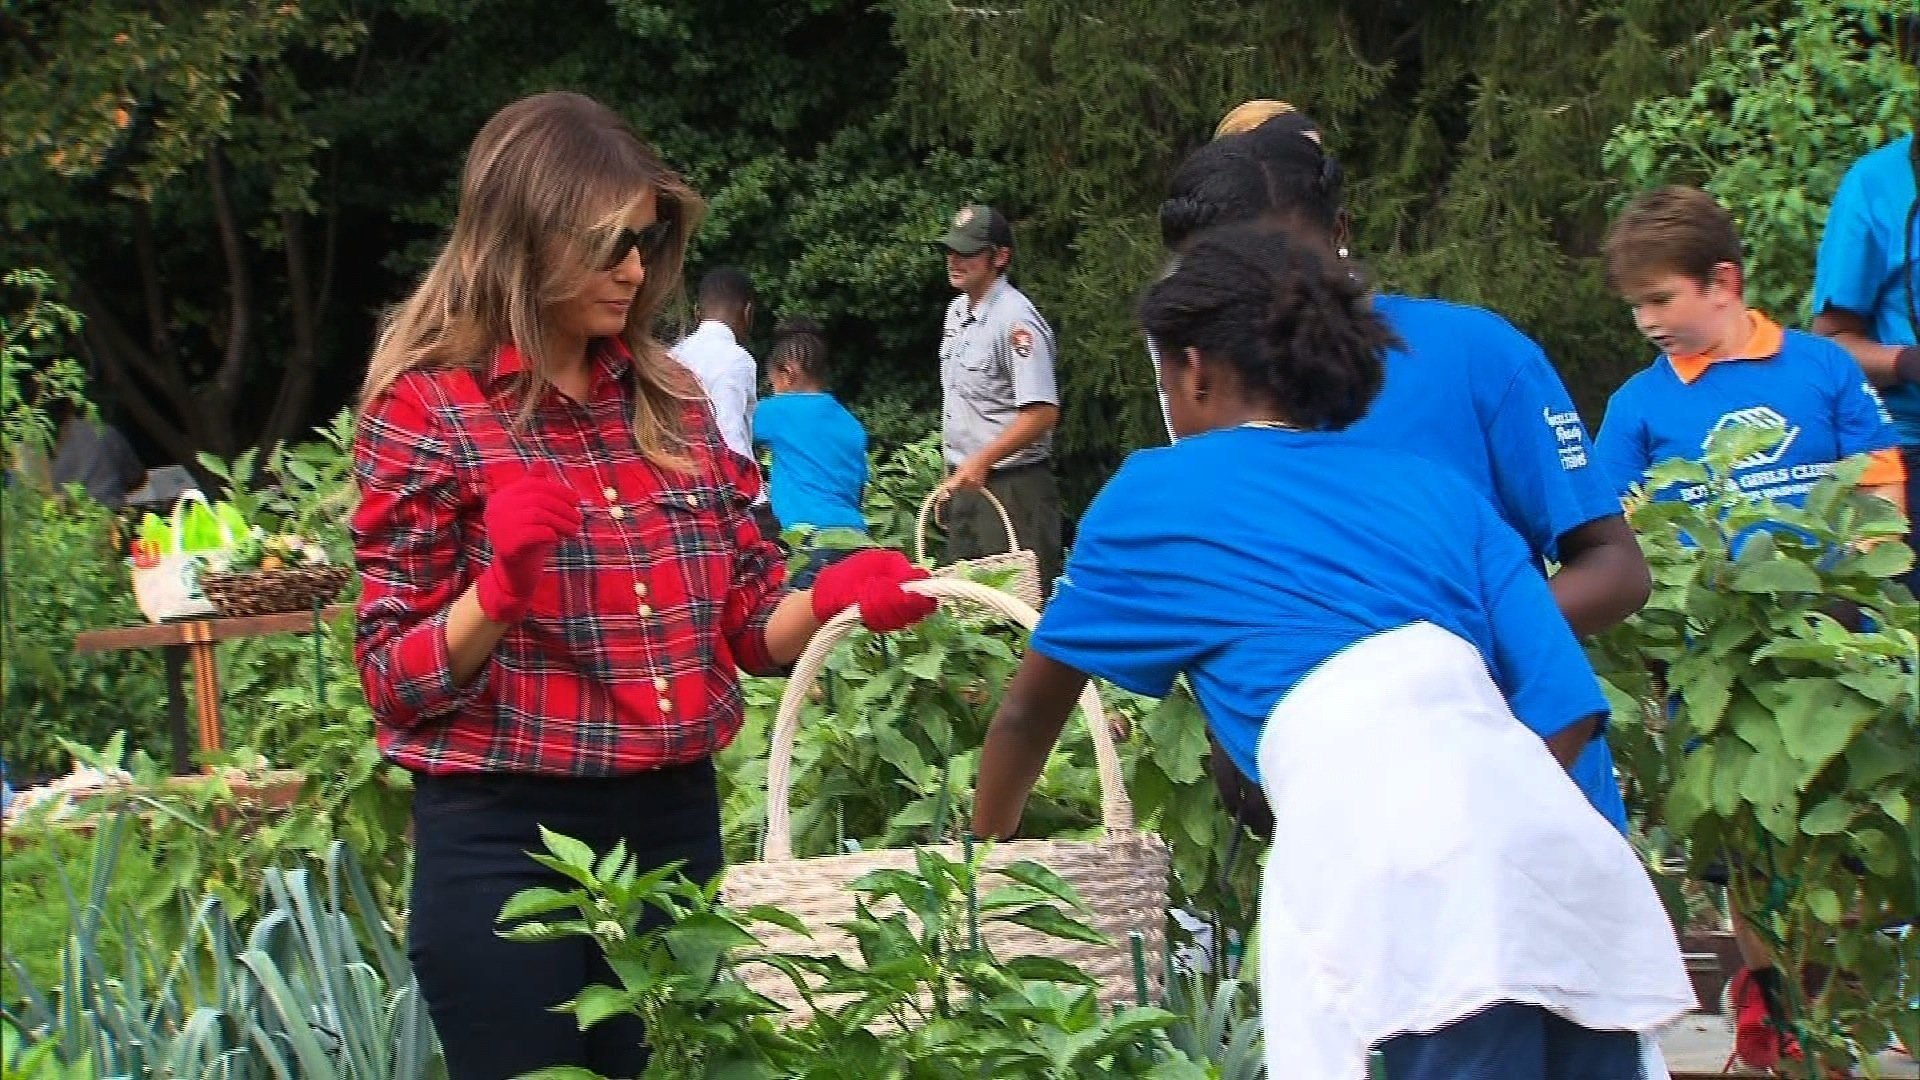 First lady does some gardening in White House kitchen garden